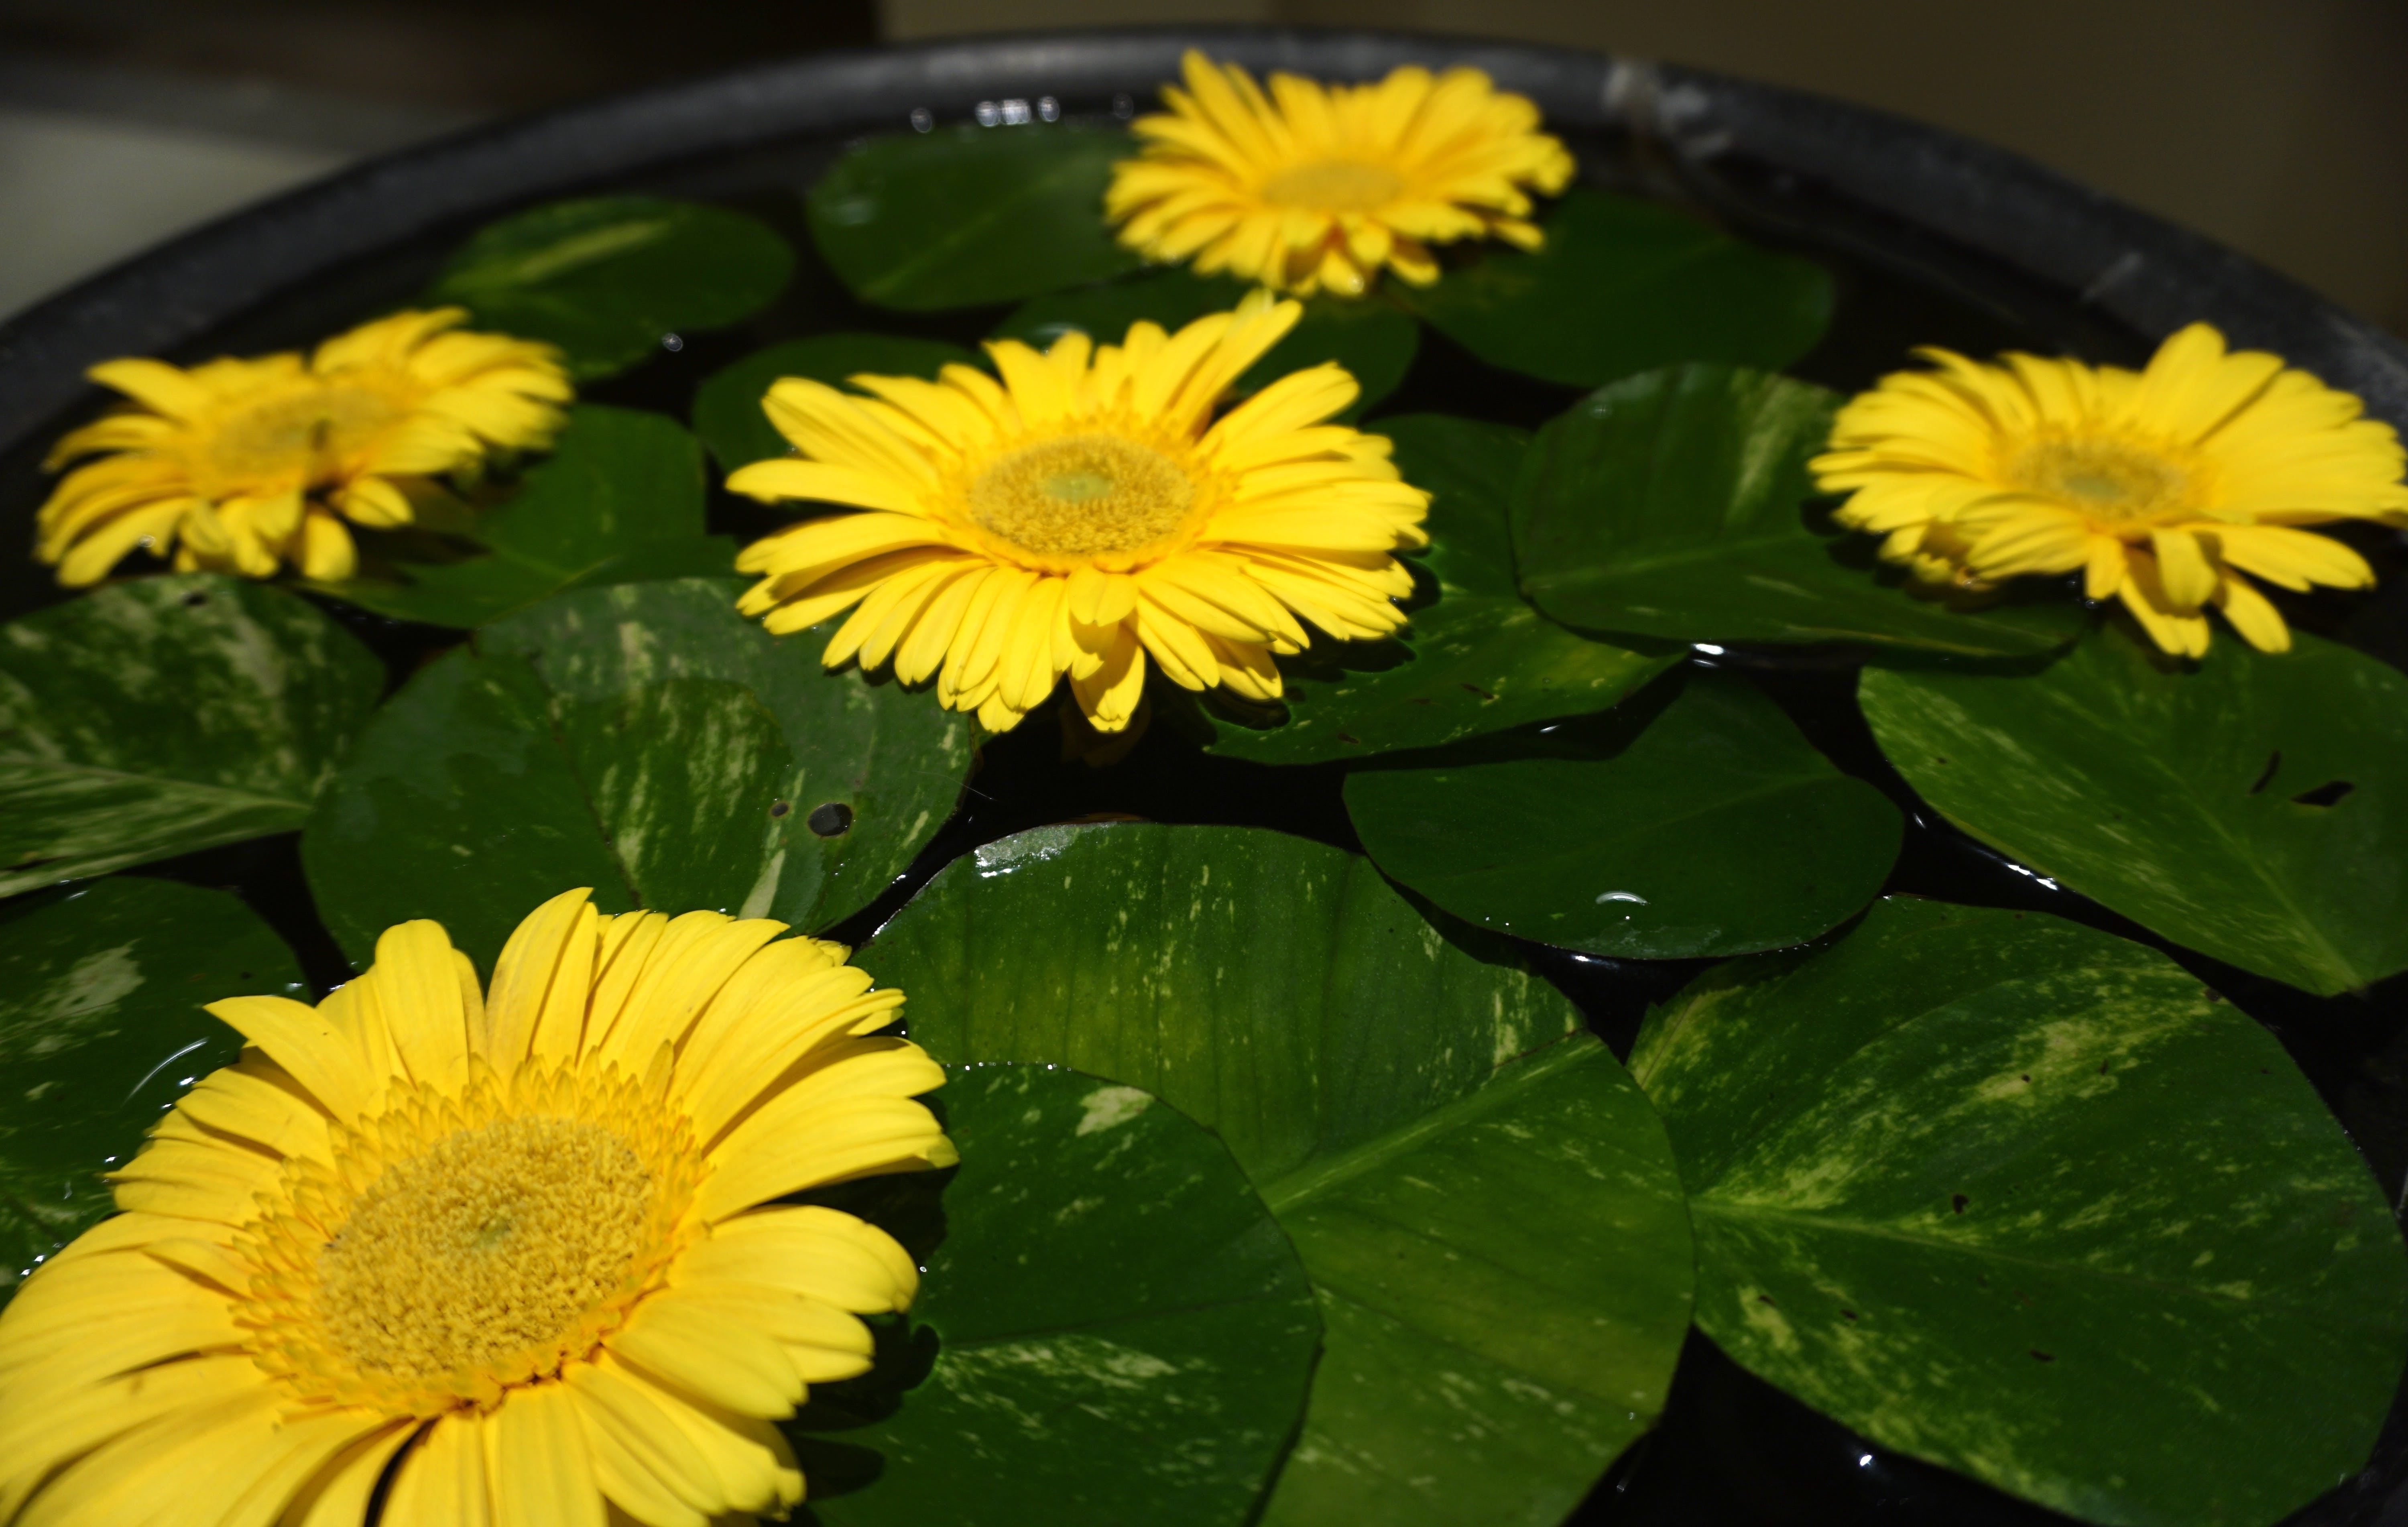 Yellow Flowers Placed With Waterlily Pods on Black Basin